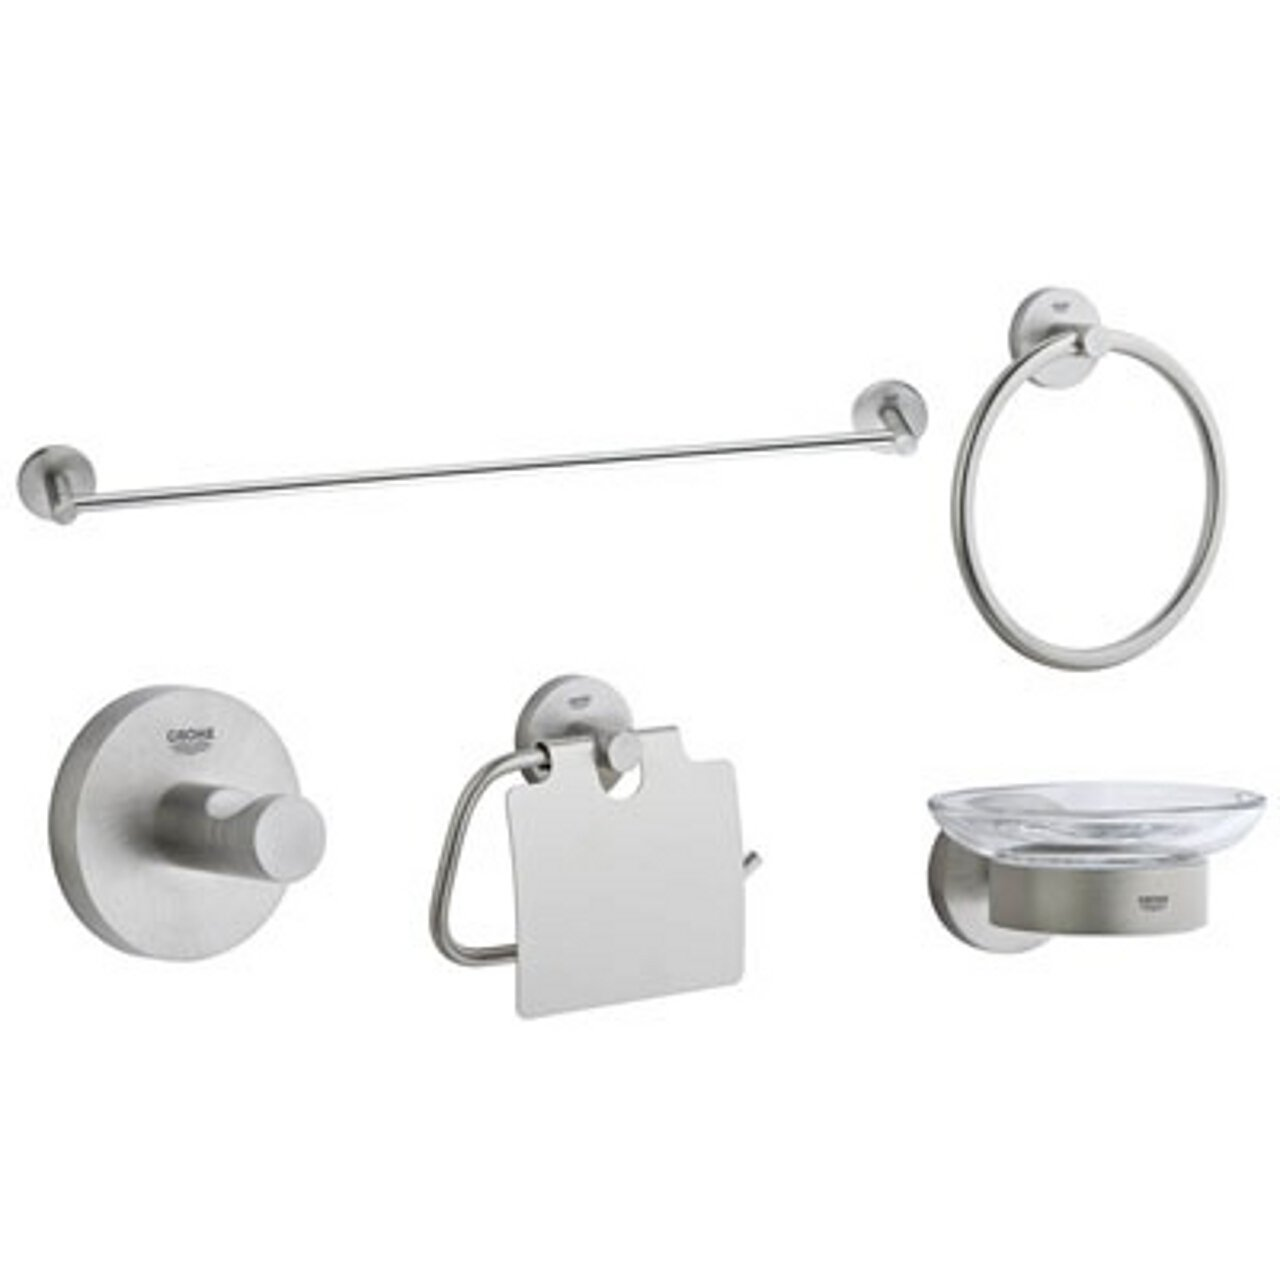 Grohe bathroom accessories - Grohe Bathroom Accessories 19